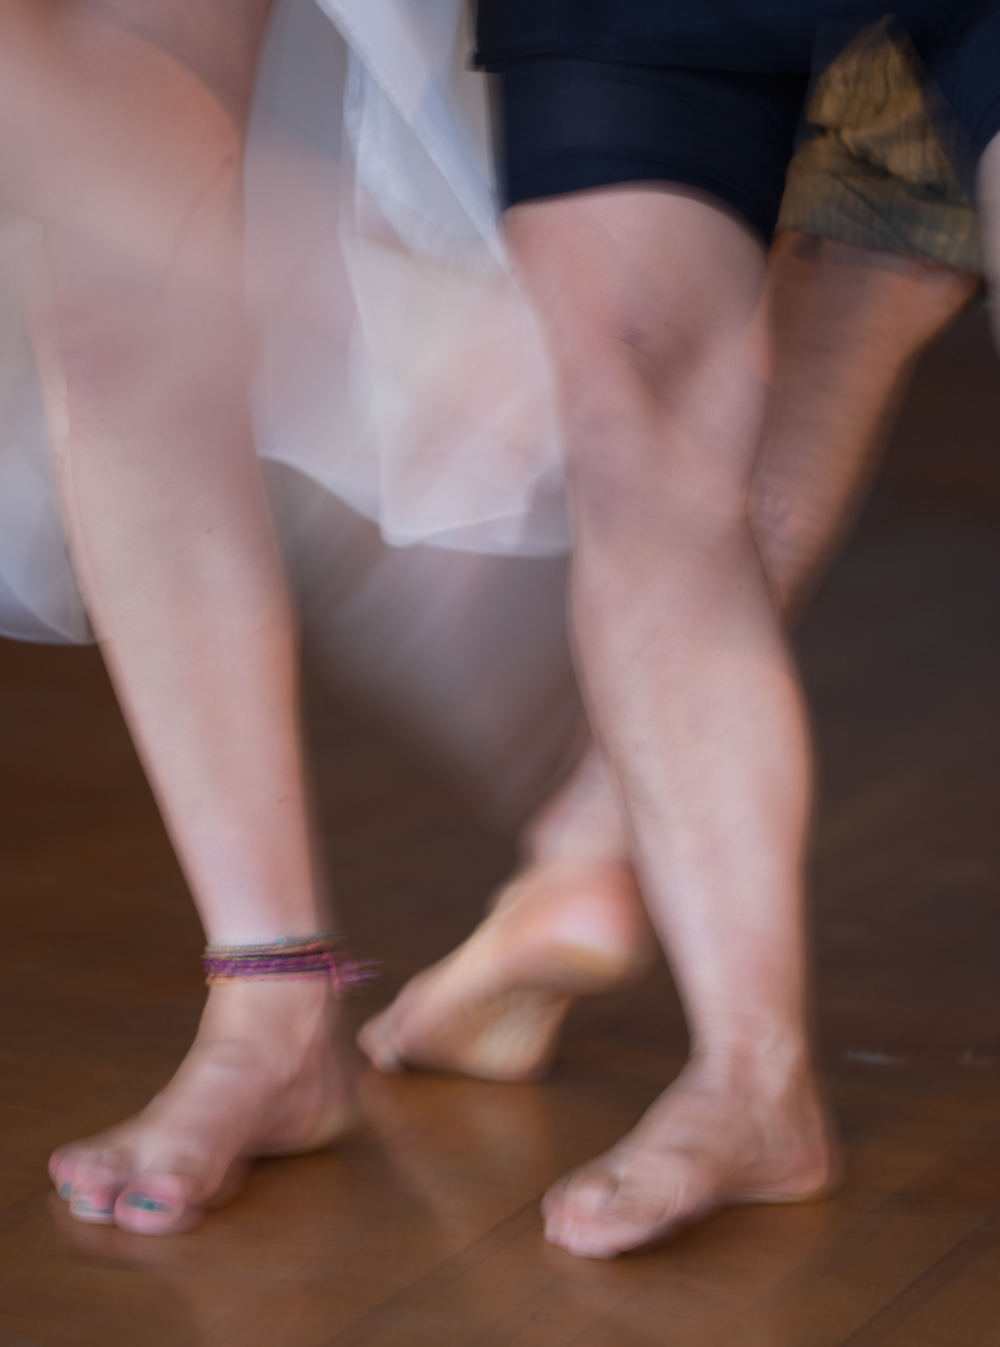 OPEN FLOOR & CONSCIOUS DANCE - + Learn more+ Find classes, workshops, & events